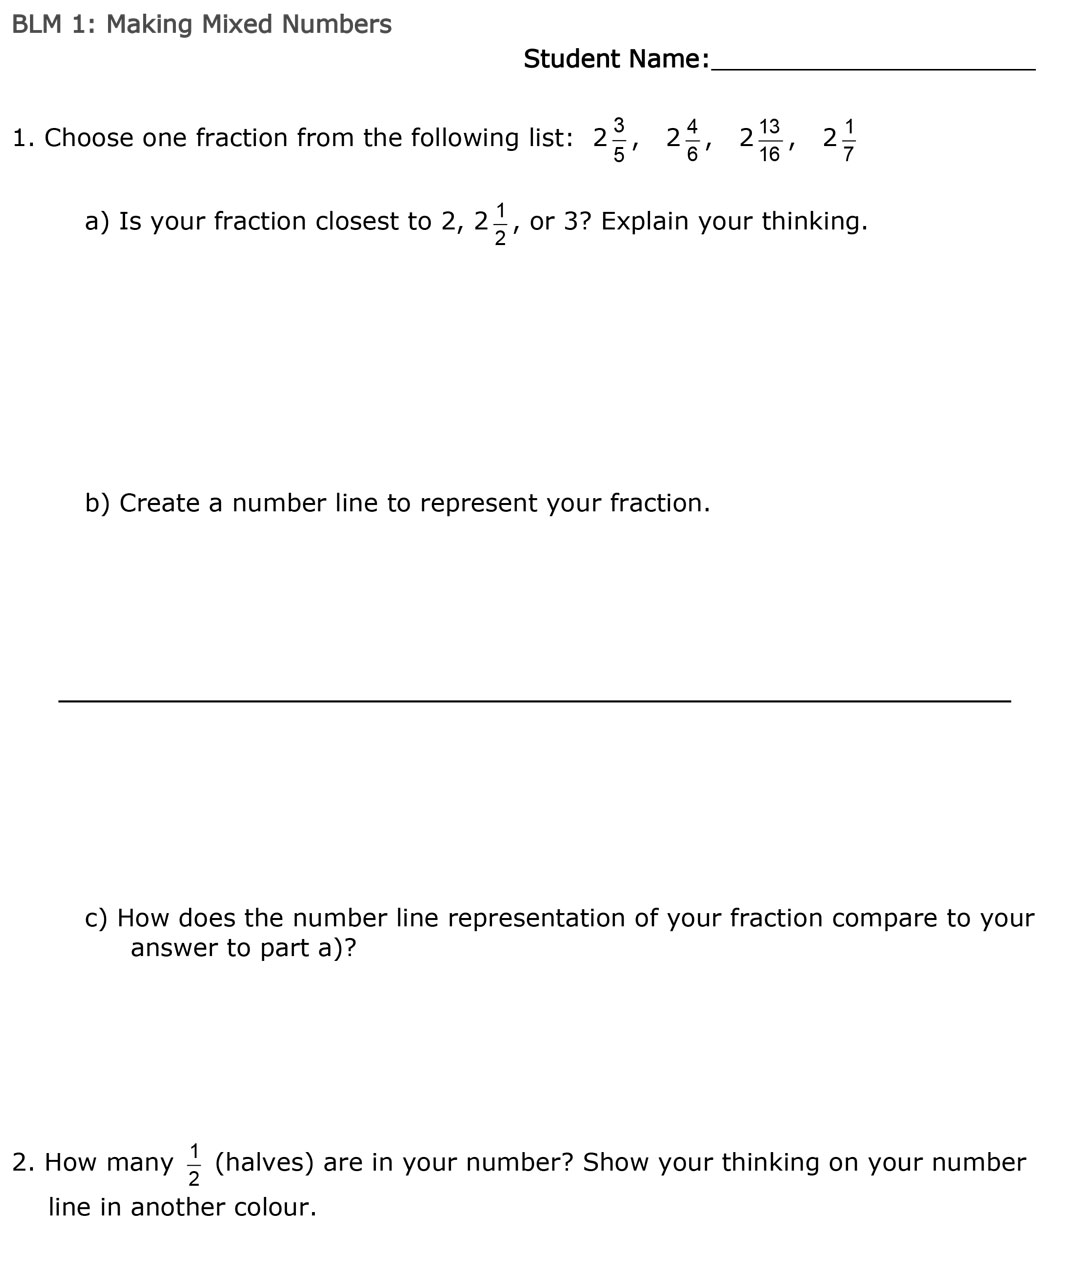 Making Mixed Numbers BLM 1 page 1